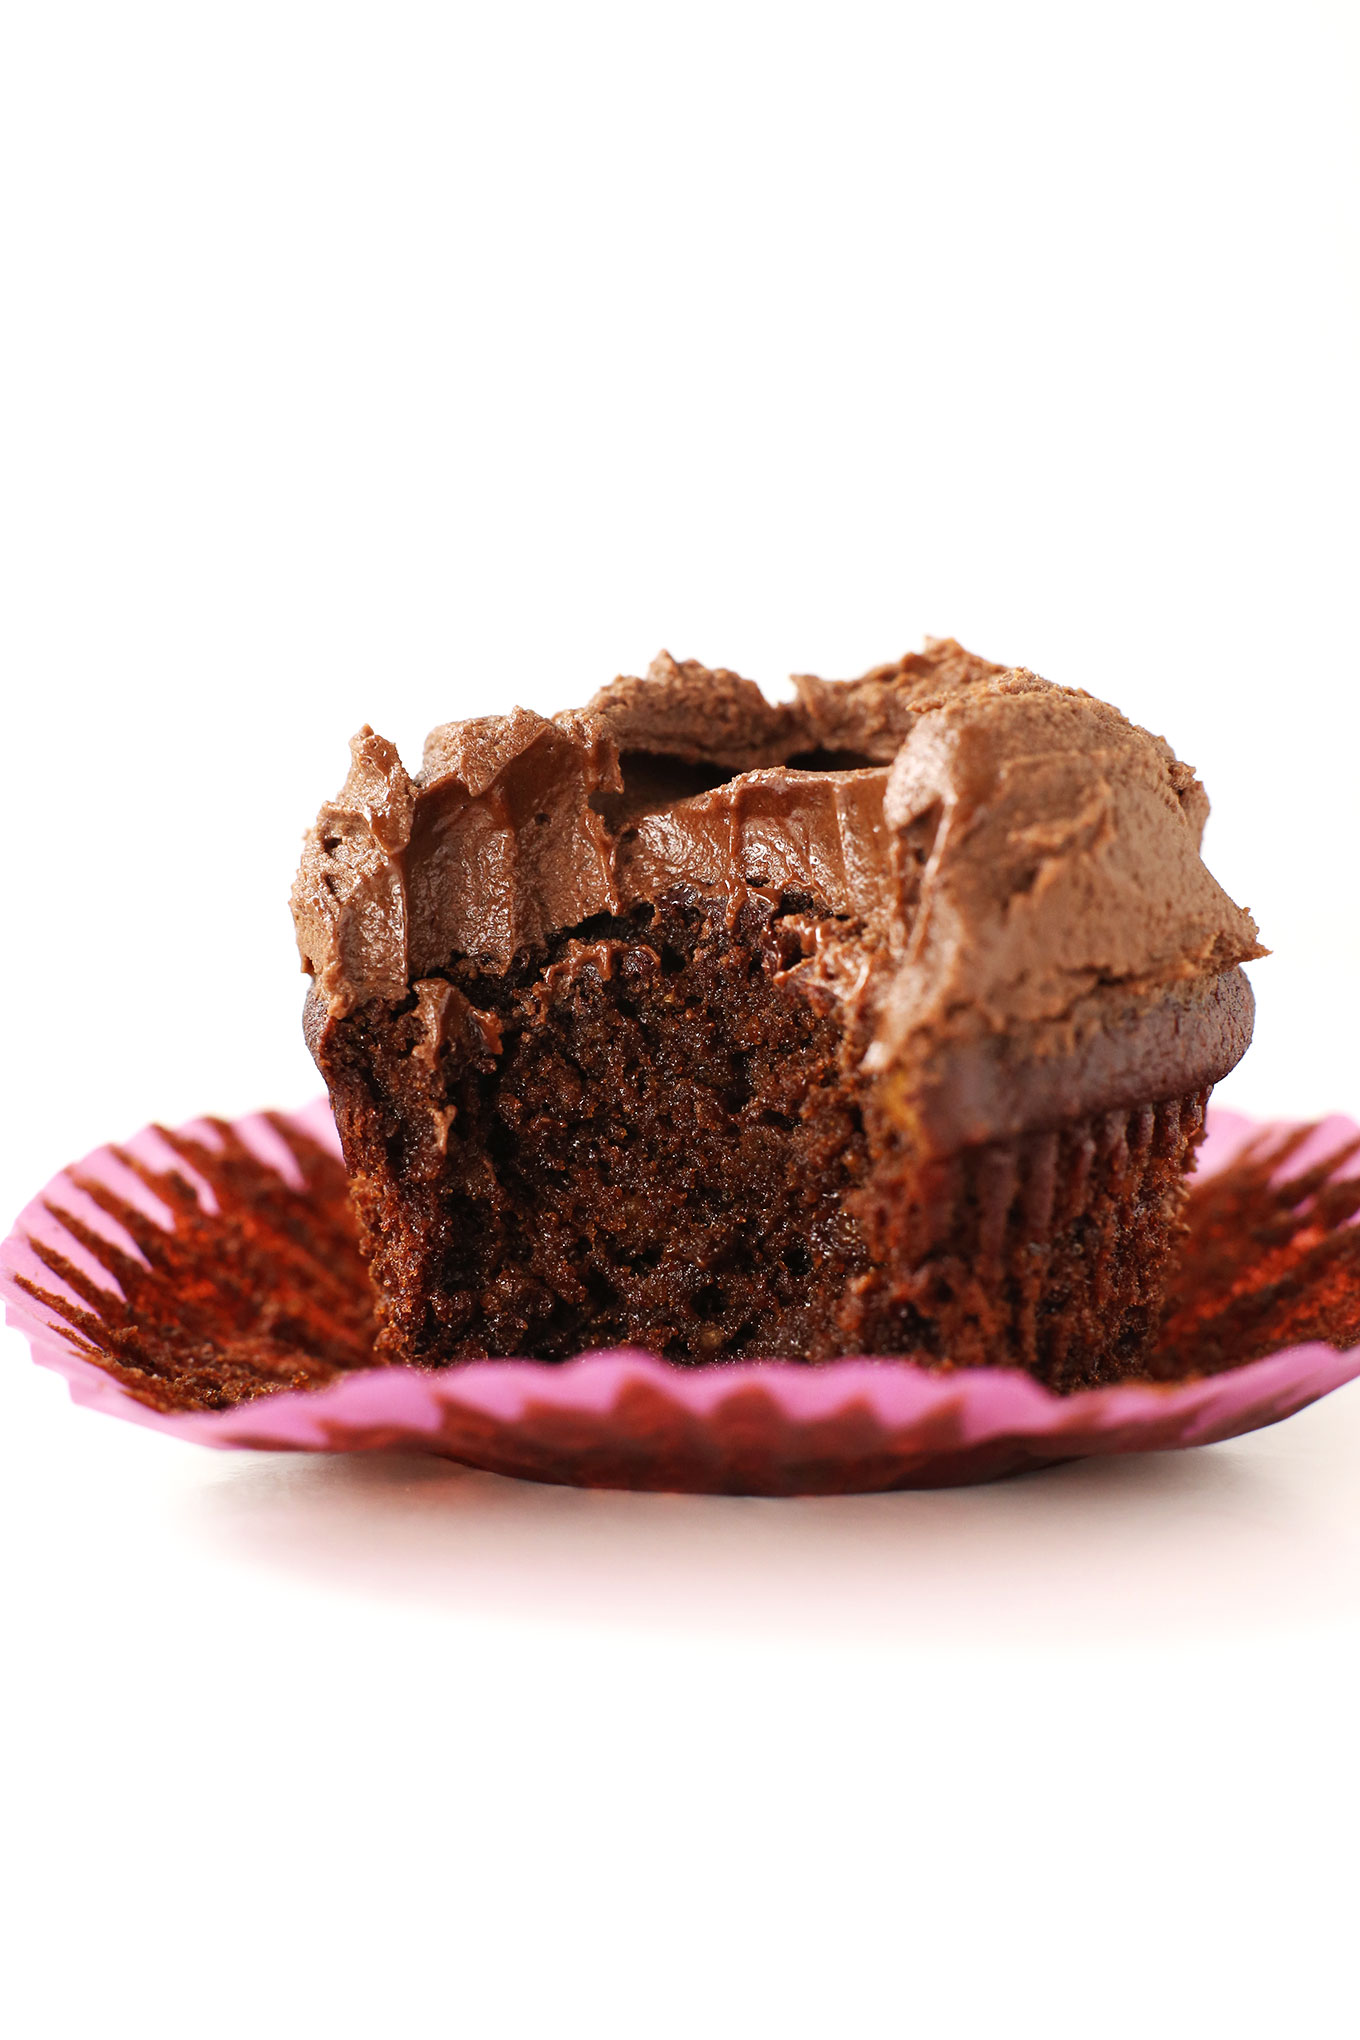 Homemade chocolate cupcake for a delicious gluten-free vegan dessert